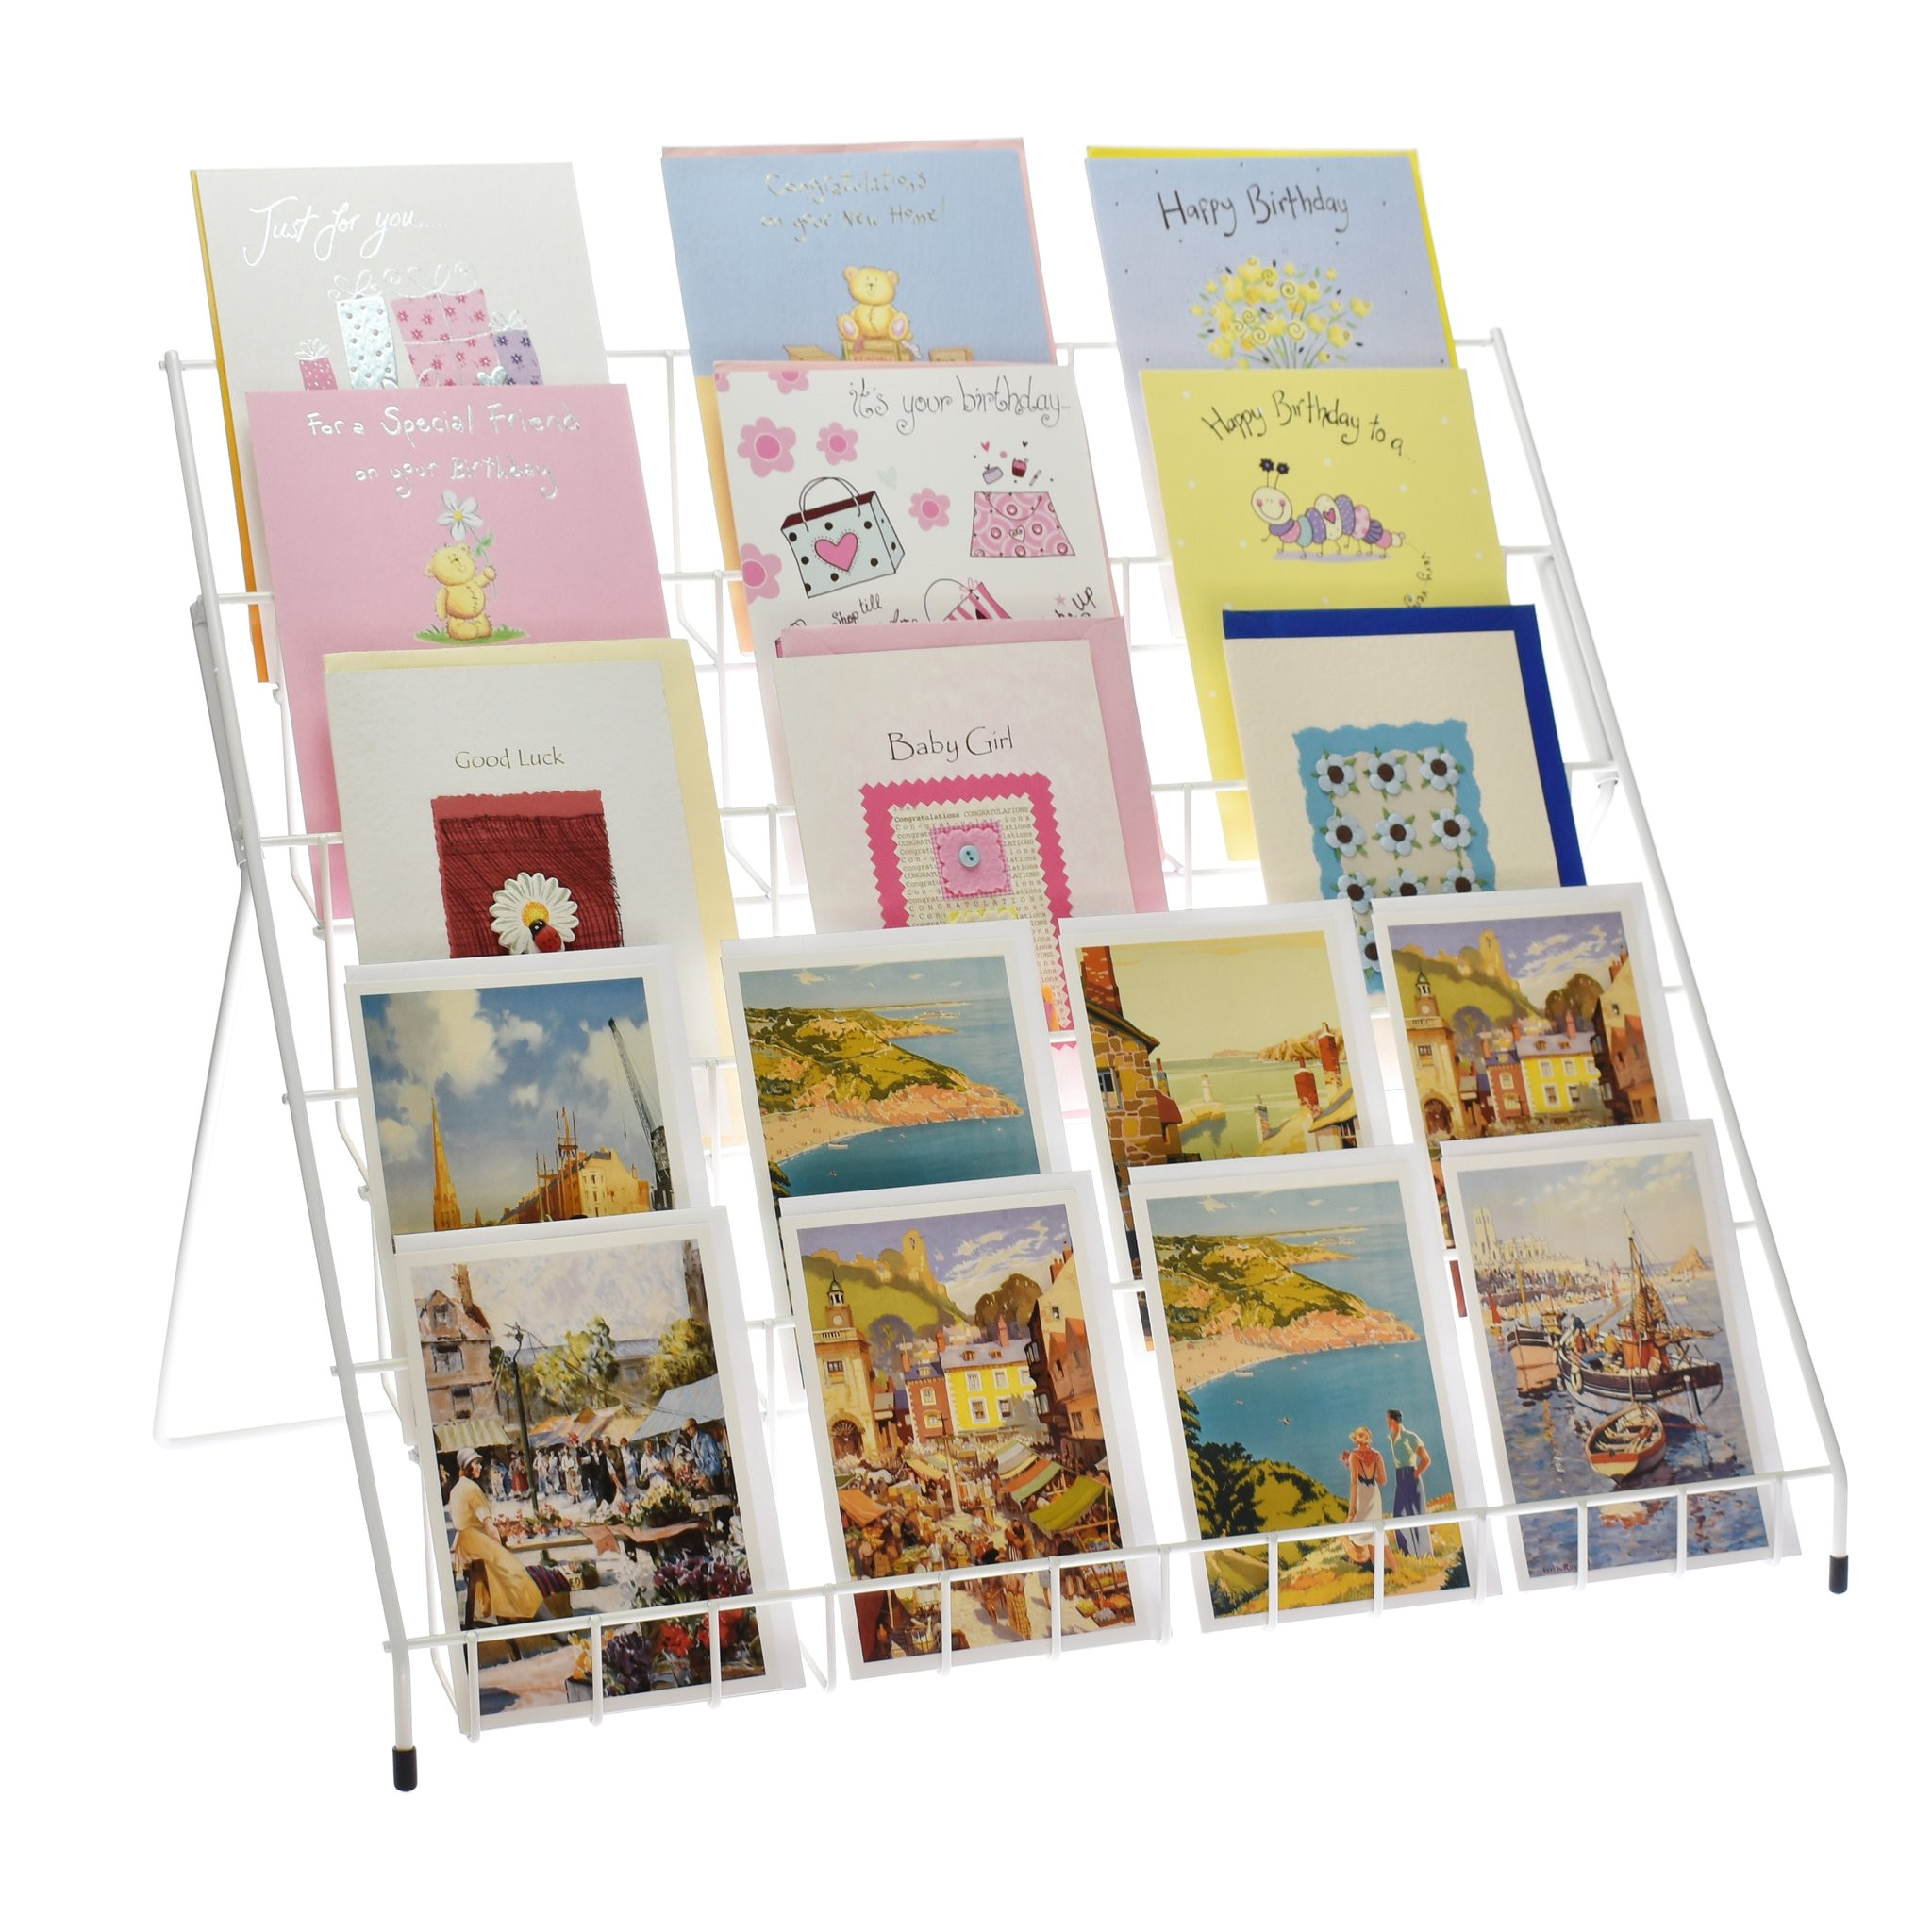 greeting card display 5894 02 1024x1024 2x jpg